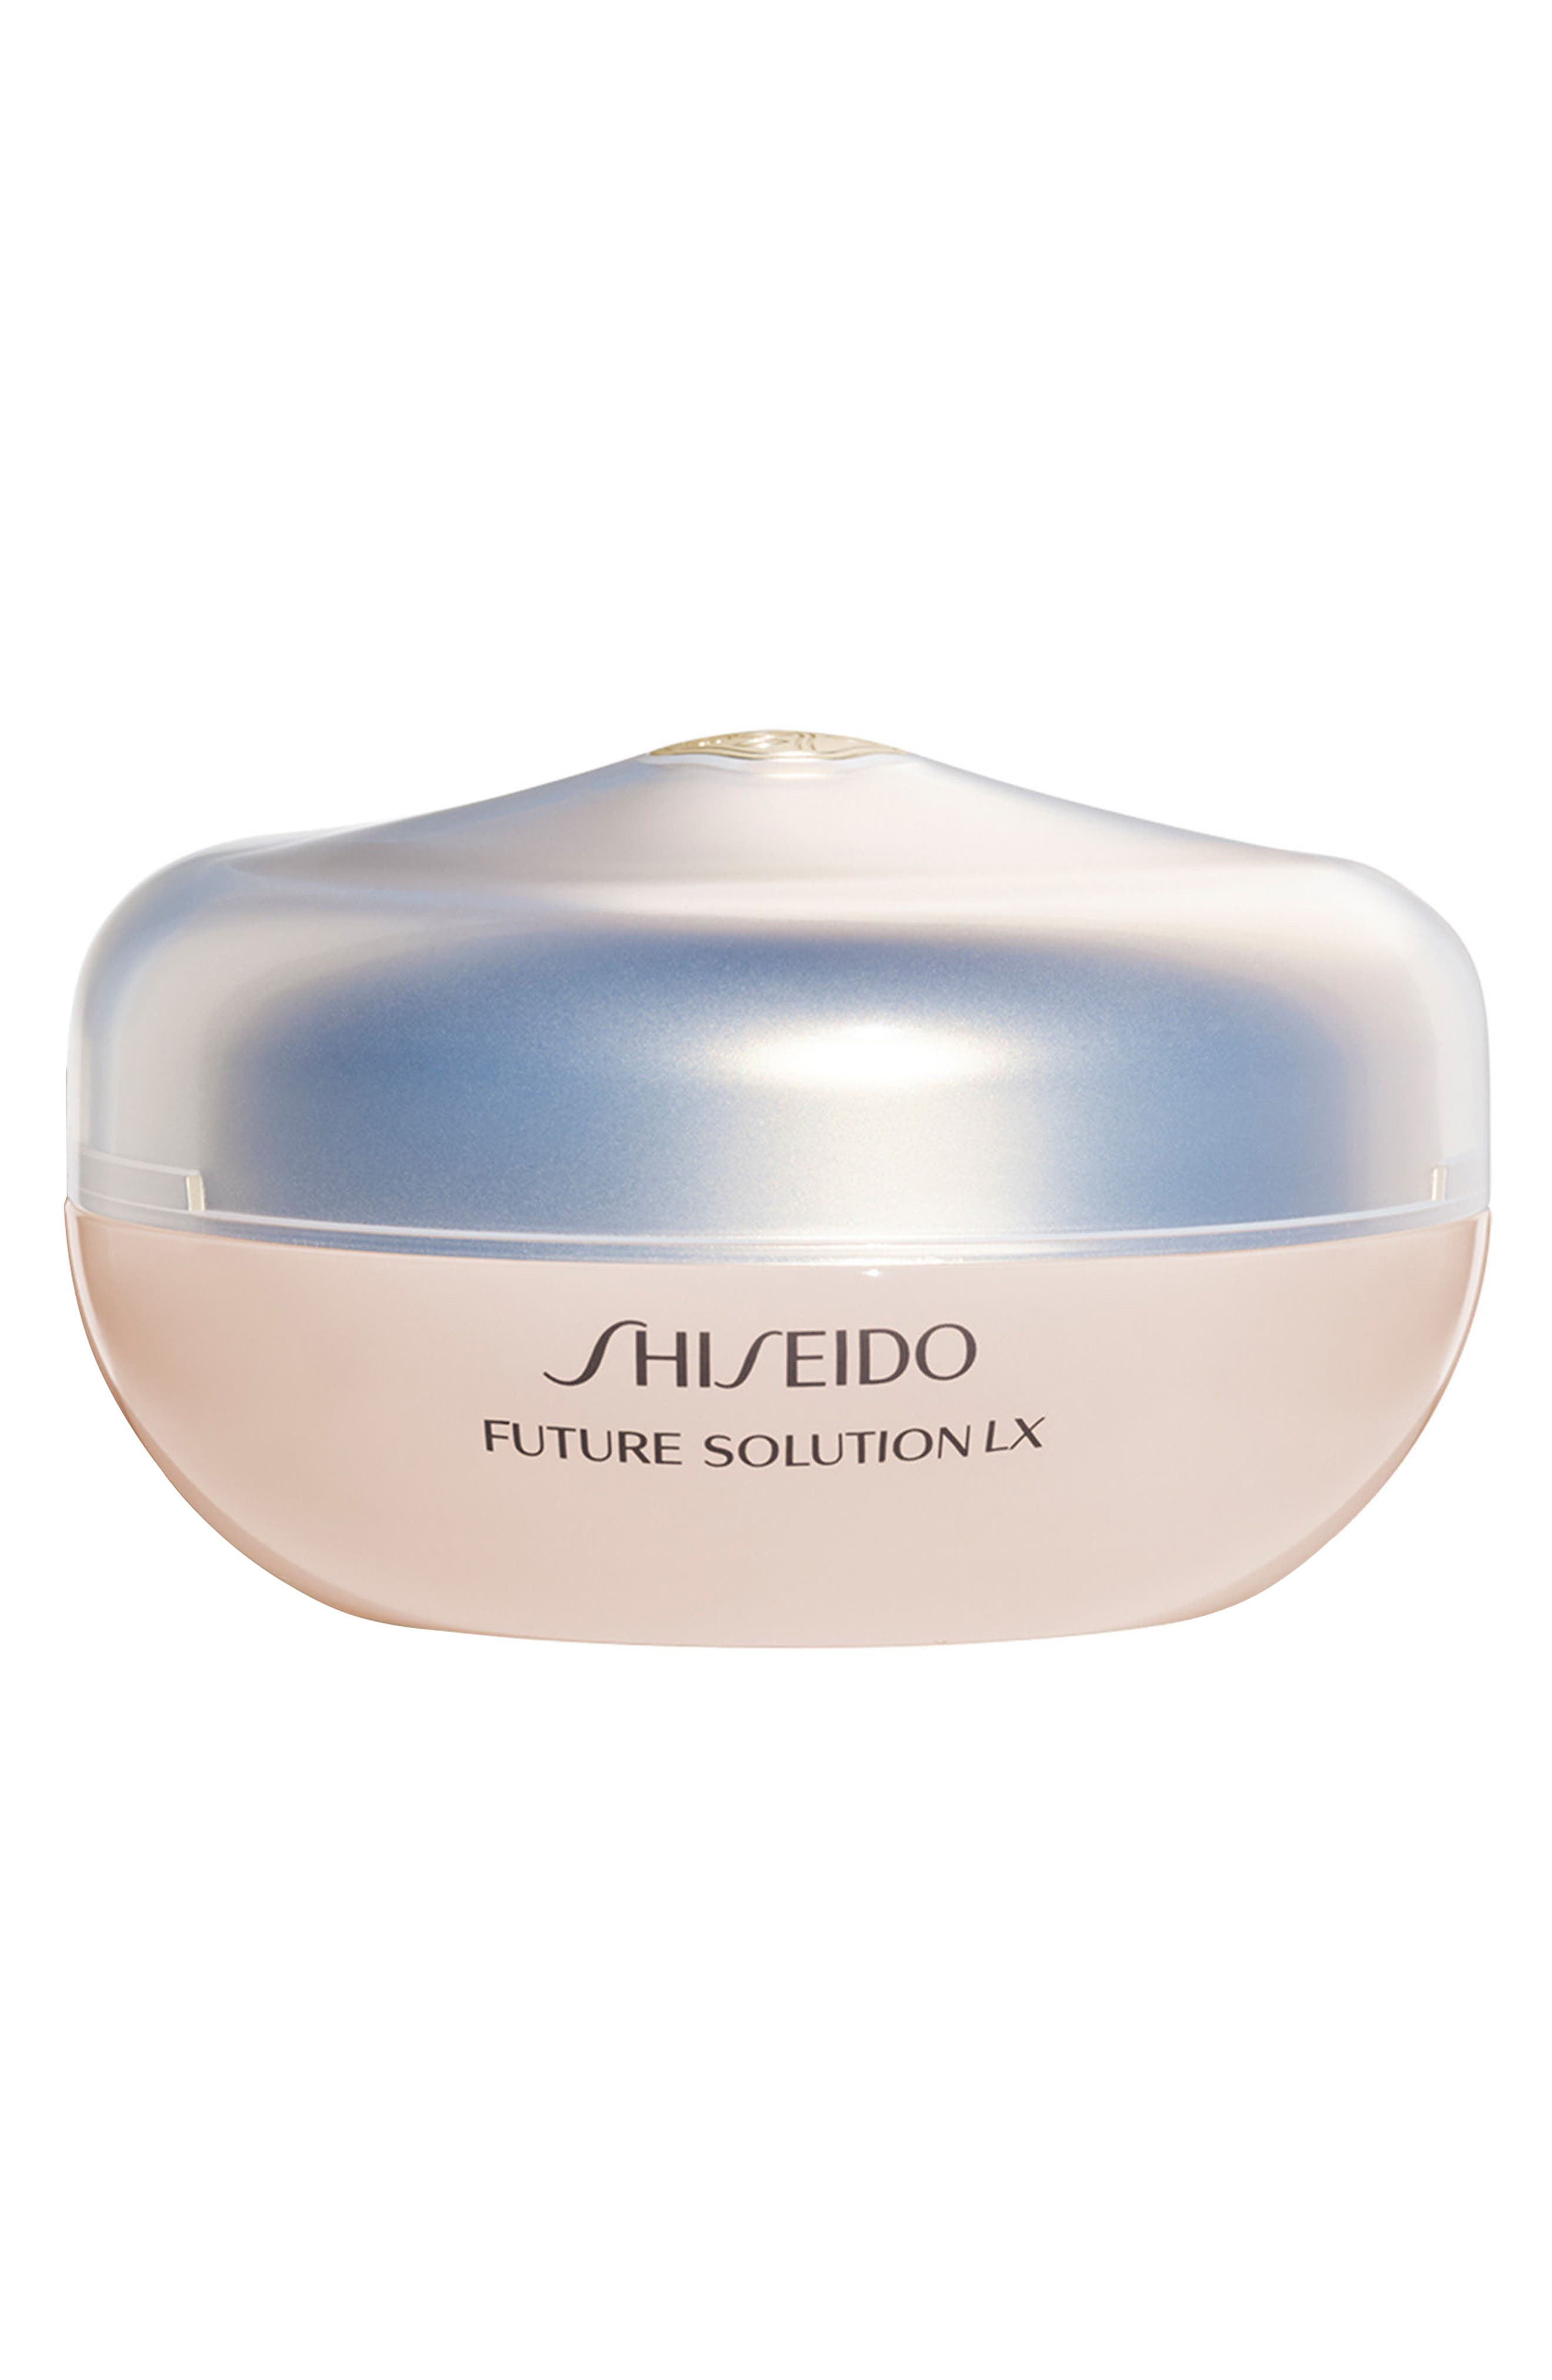 Future Solution LX Total Radiance Loose Powder,                         Main,                         color, No Color